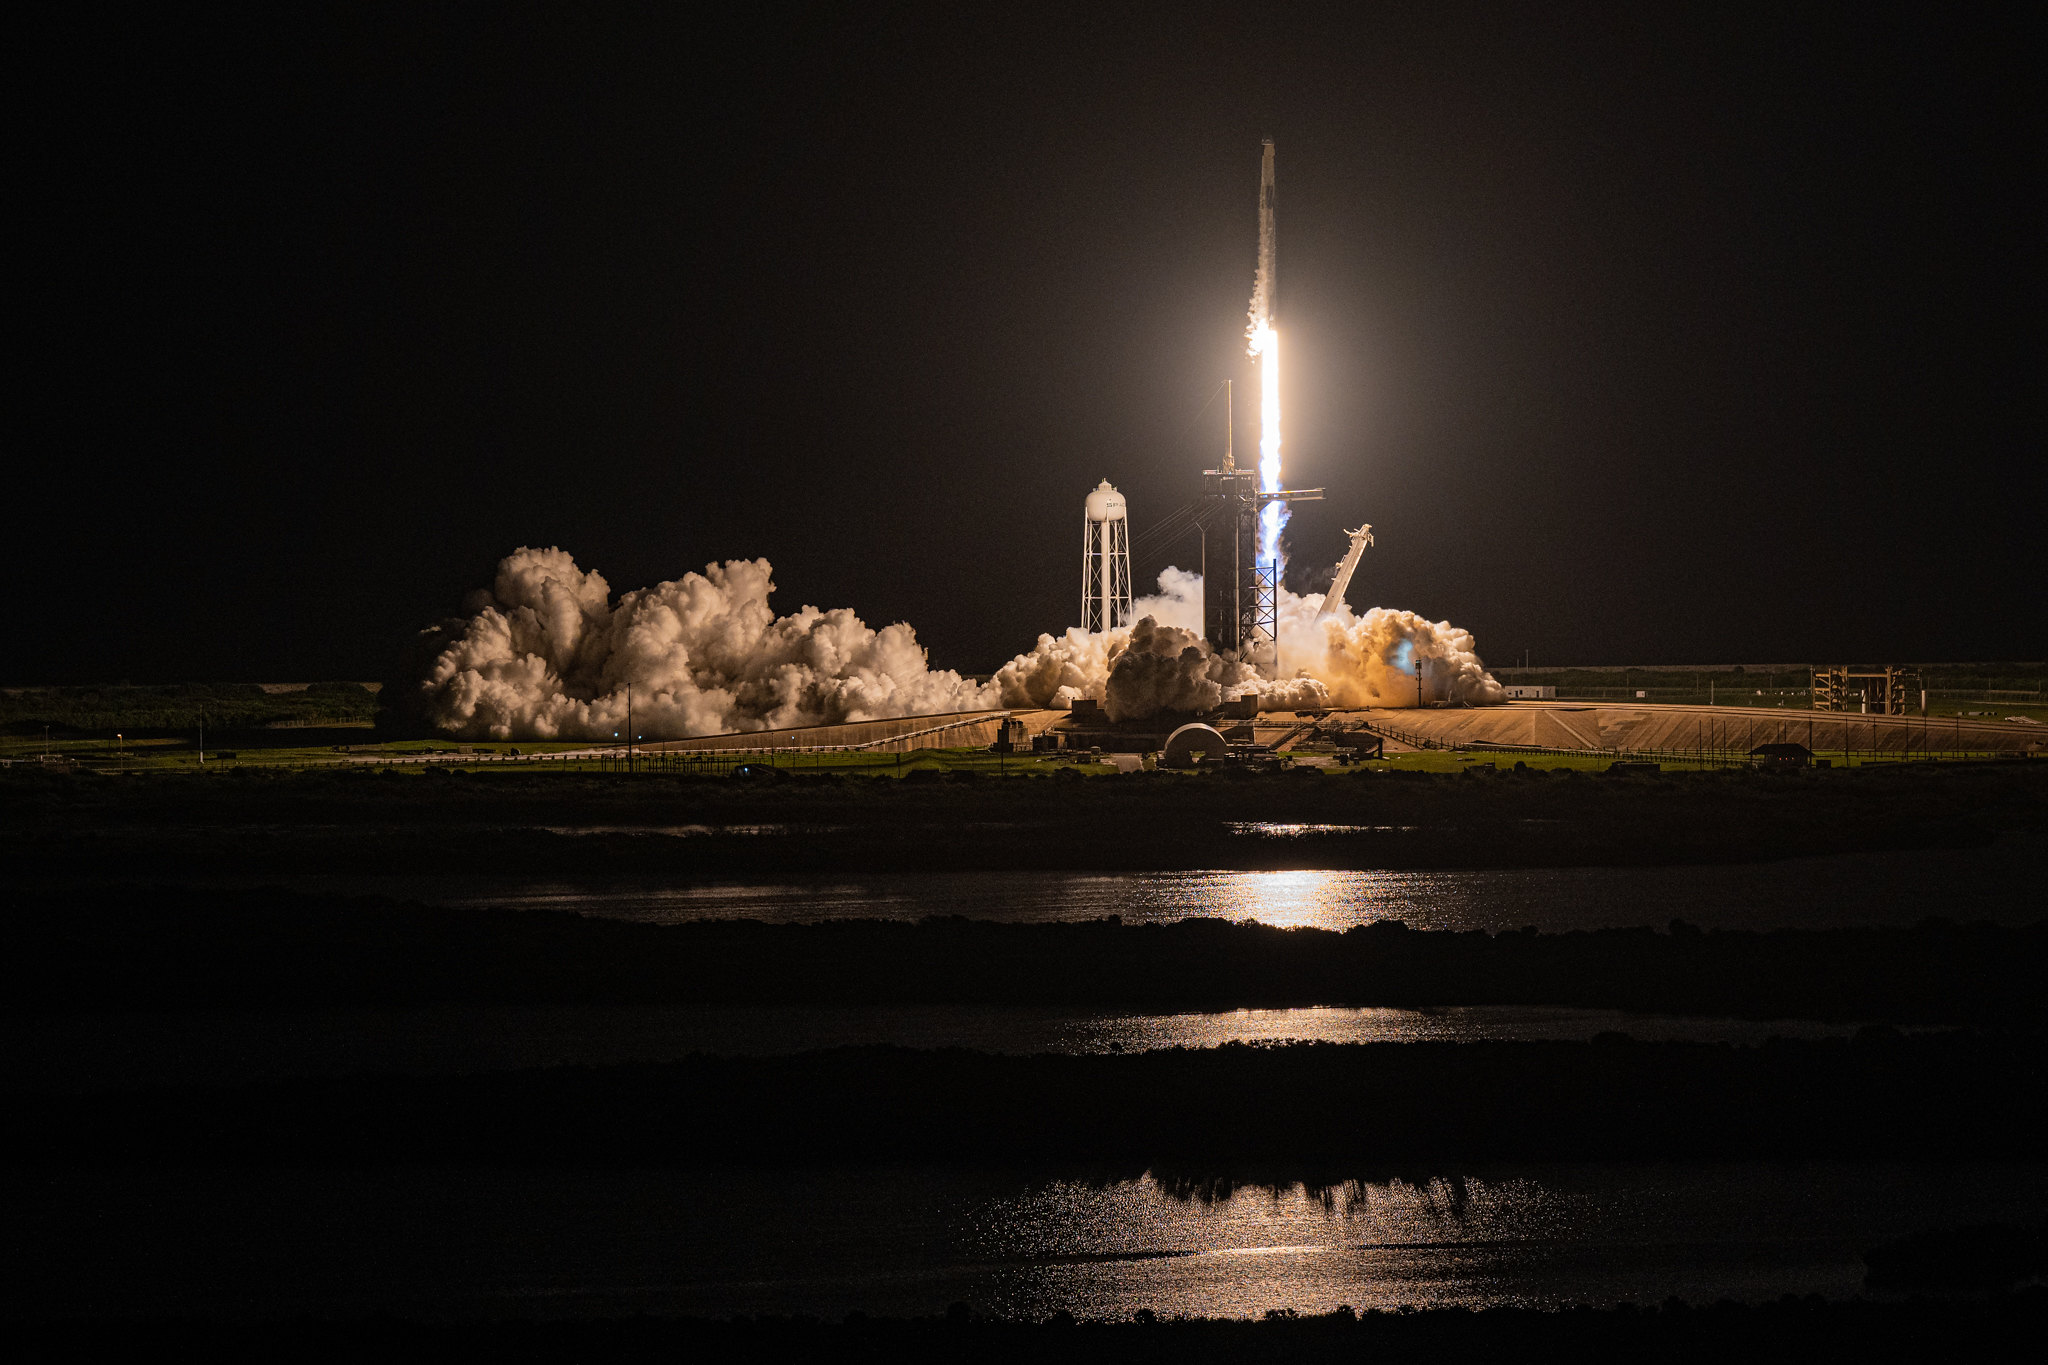 Space Chat! Inspiration4 launches to orbit, Chinese astronauts land back on Earth and so much more